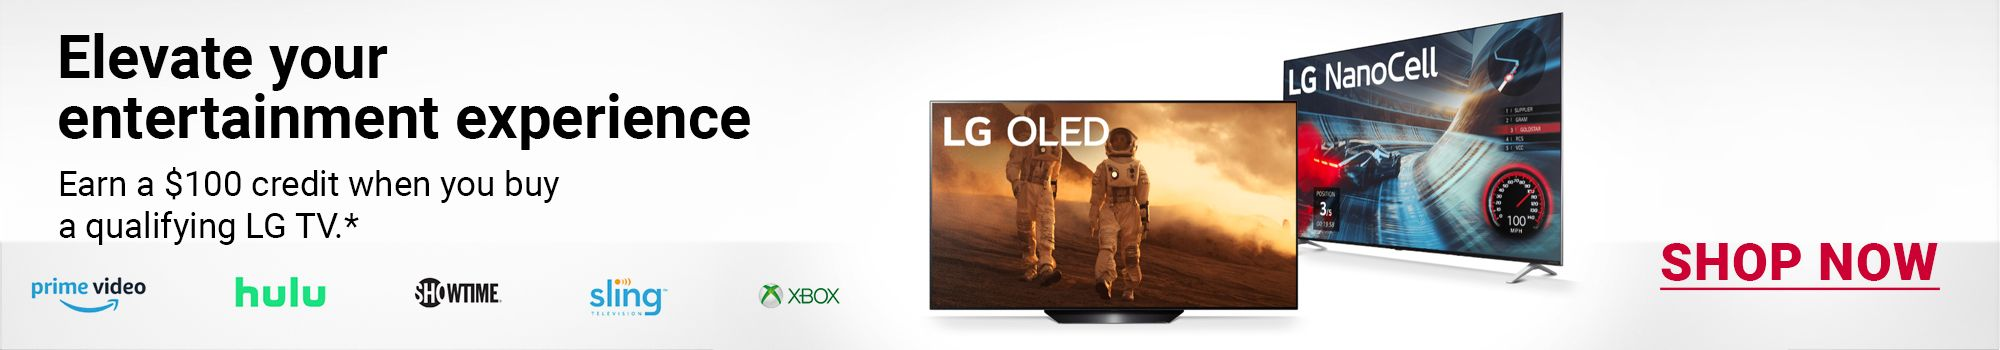 Elevate your entertainment experience. Earn a $100 credit when you buy a qualifying LG TV.* Click to shop now